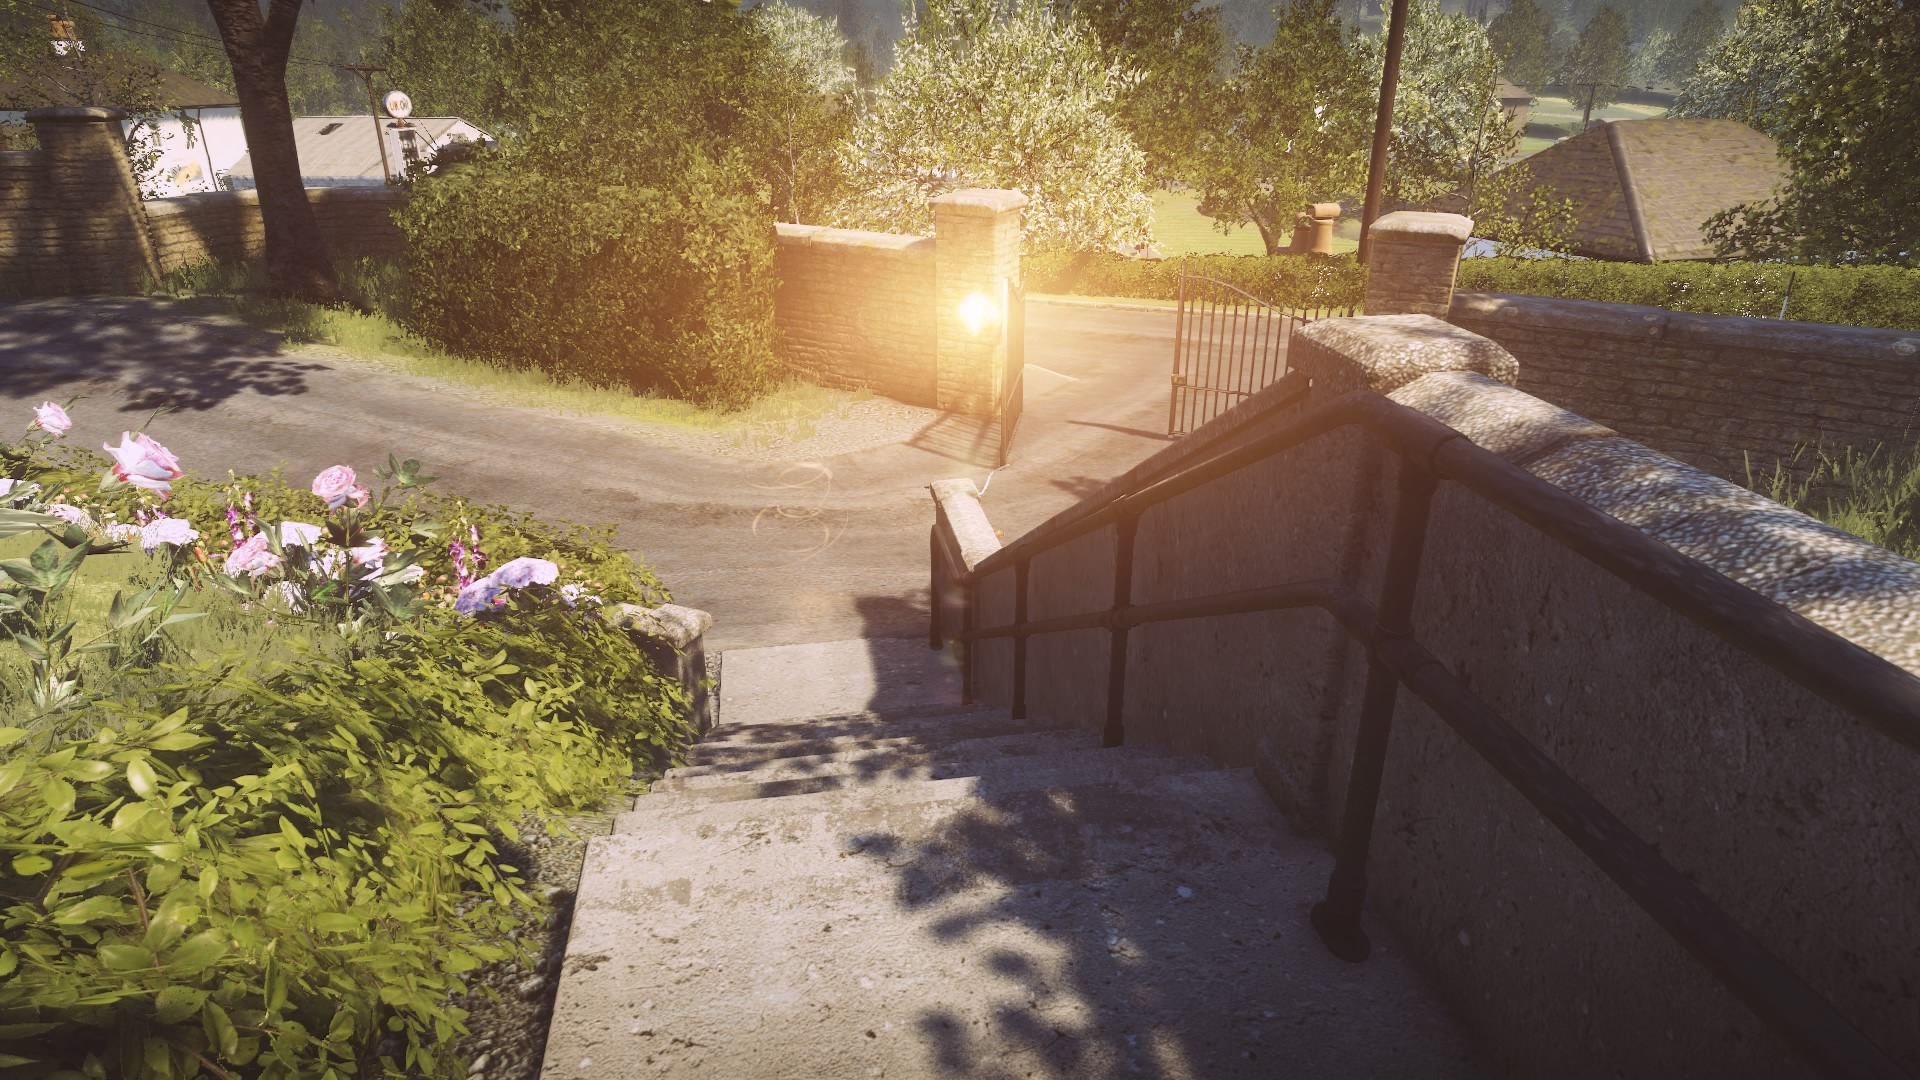 Suivre l'orbe de lumière - Everybody's gone to the rapture